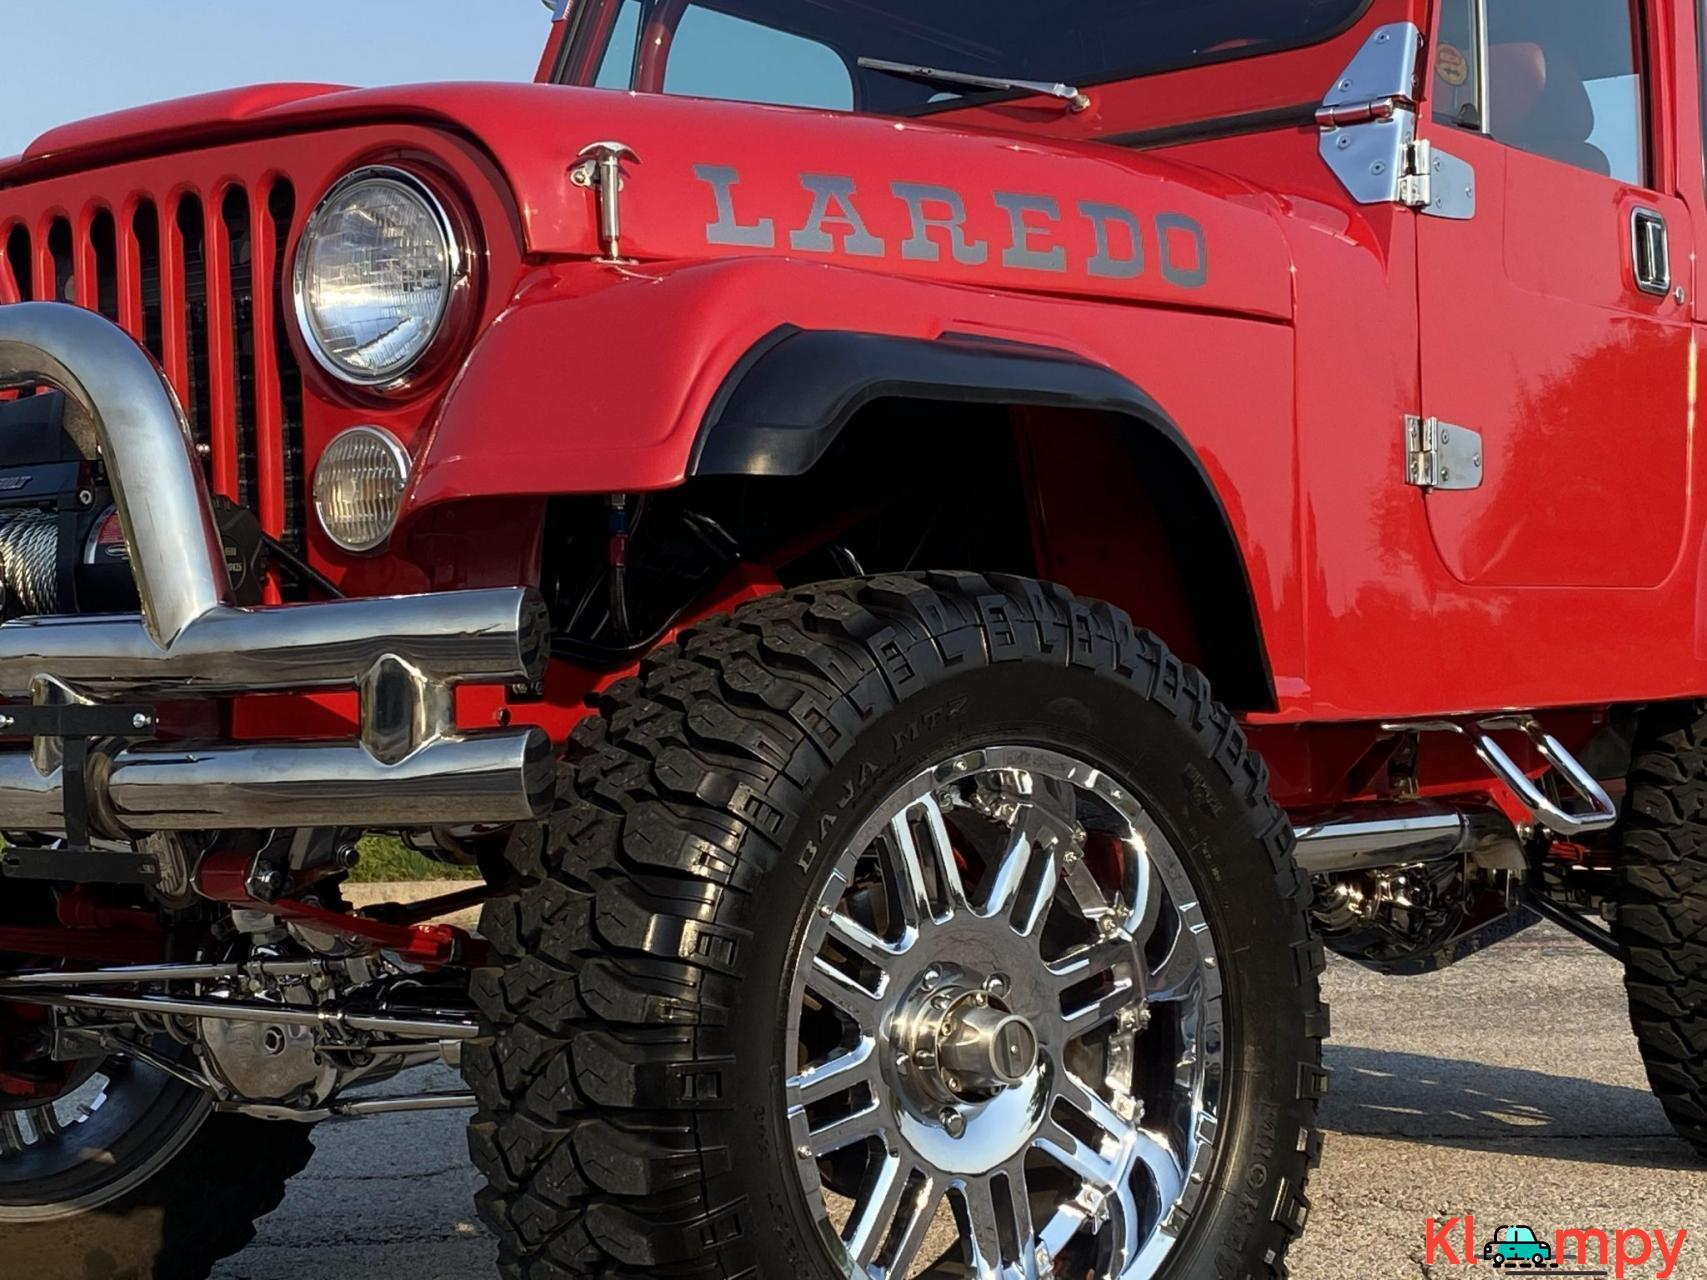 1983 Jeep CJ-7 Supercharged 350 V8 - 10/20